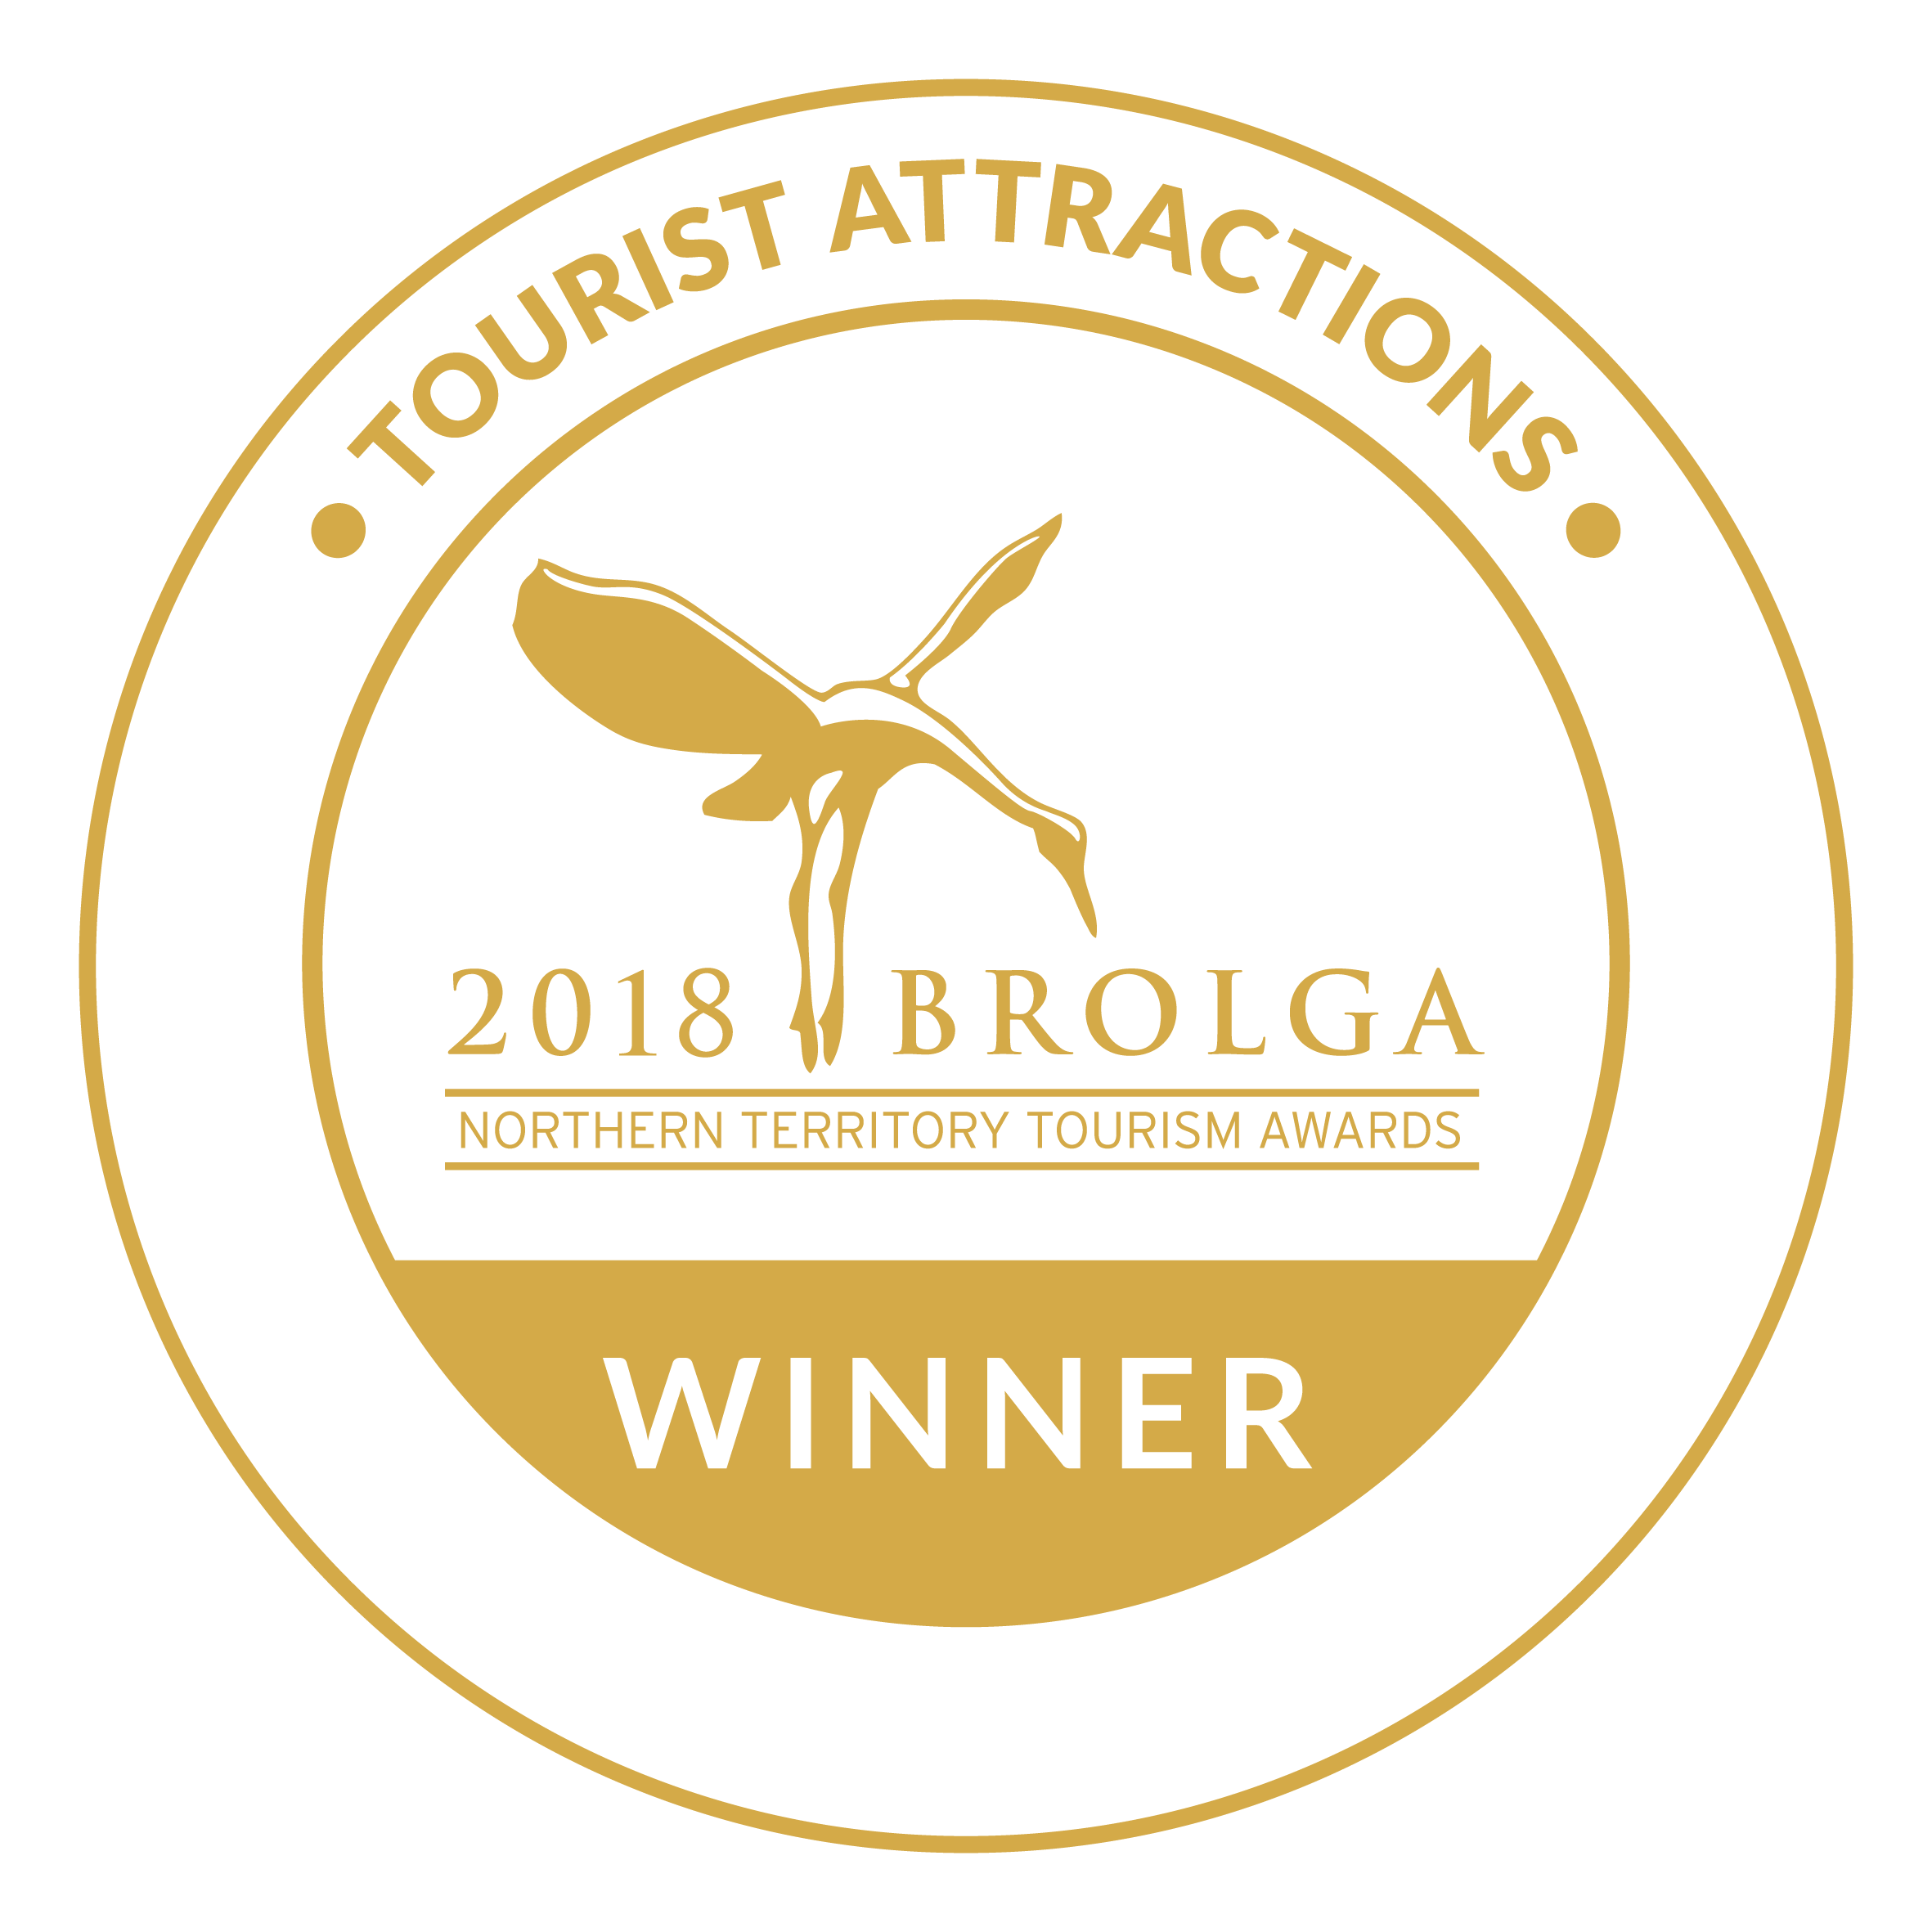 2018 Best Tourist Attraction in the Northern Territory